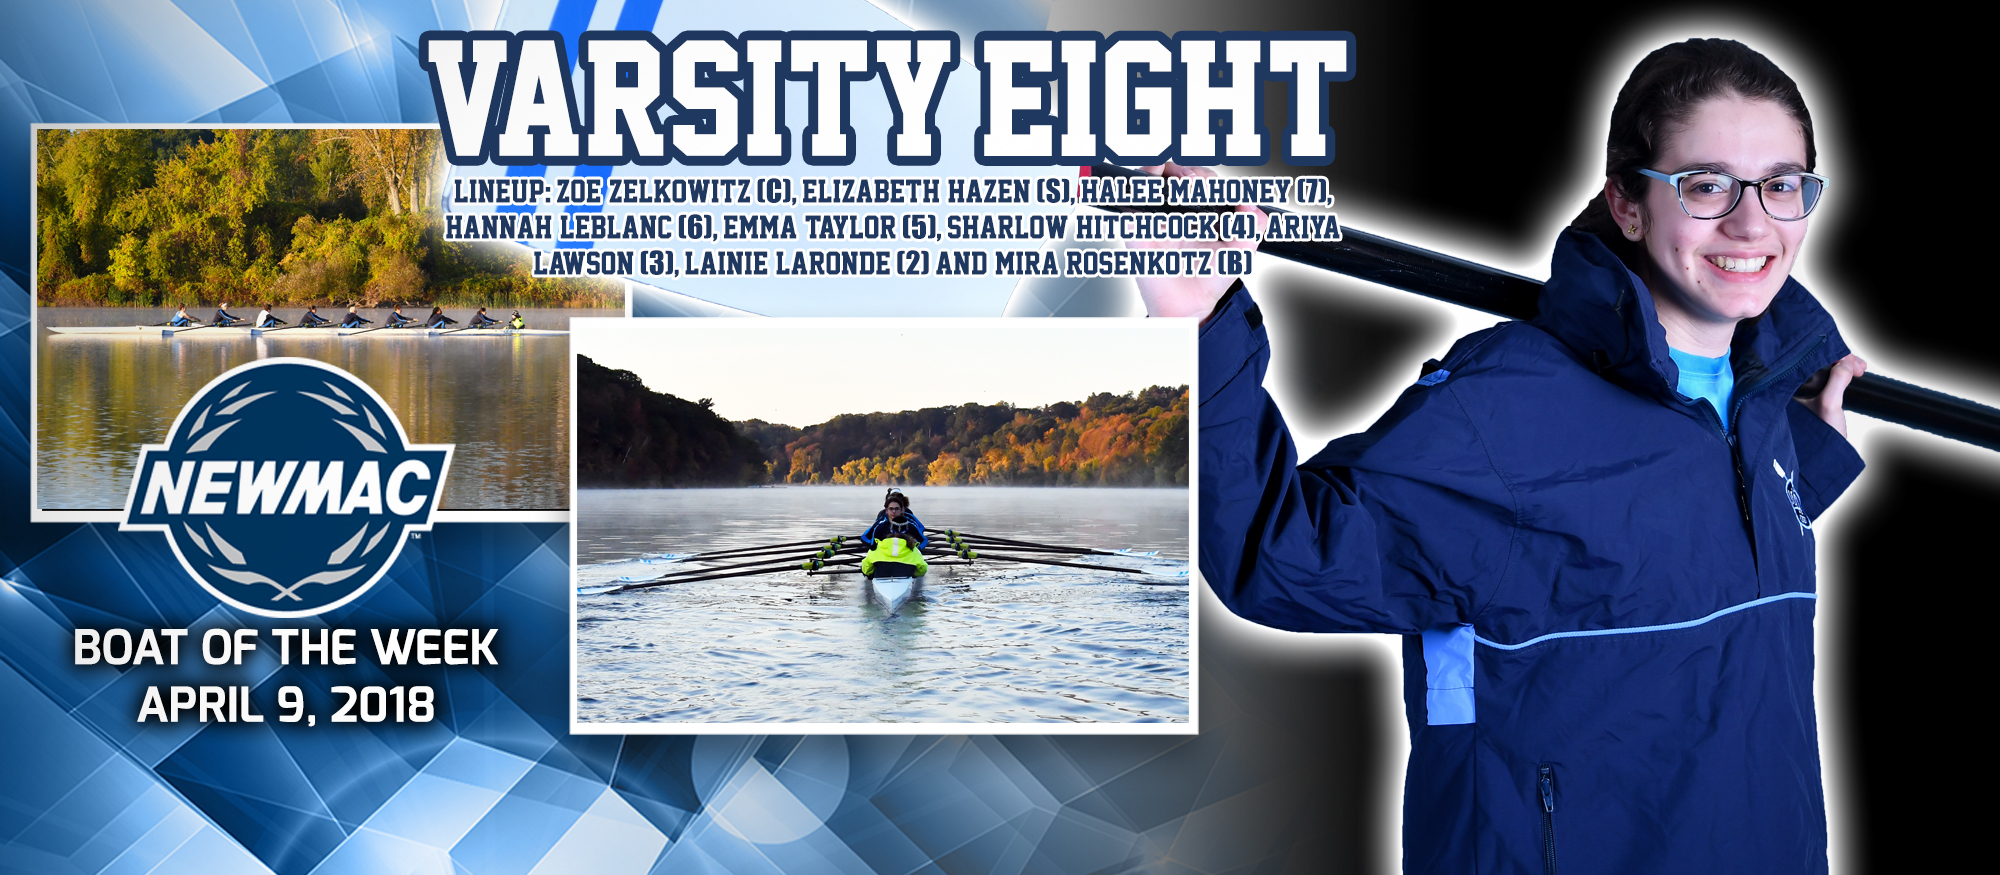 Graphic promoting the Lyons Rowing Boat of the Week, which garnered the honors after tough competition last weekend. Pictured are two action photos as well as a posed photo of rower Halee Mahoney.